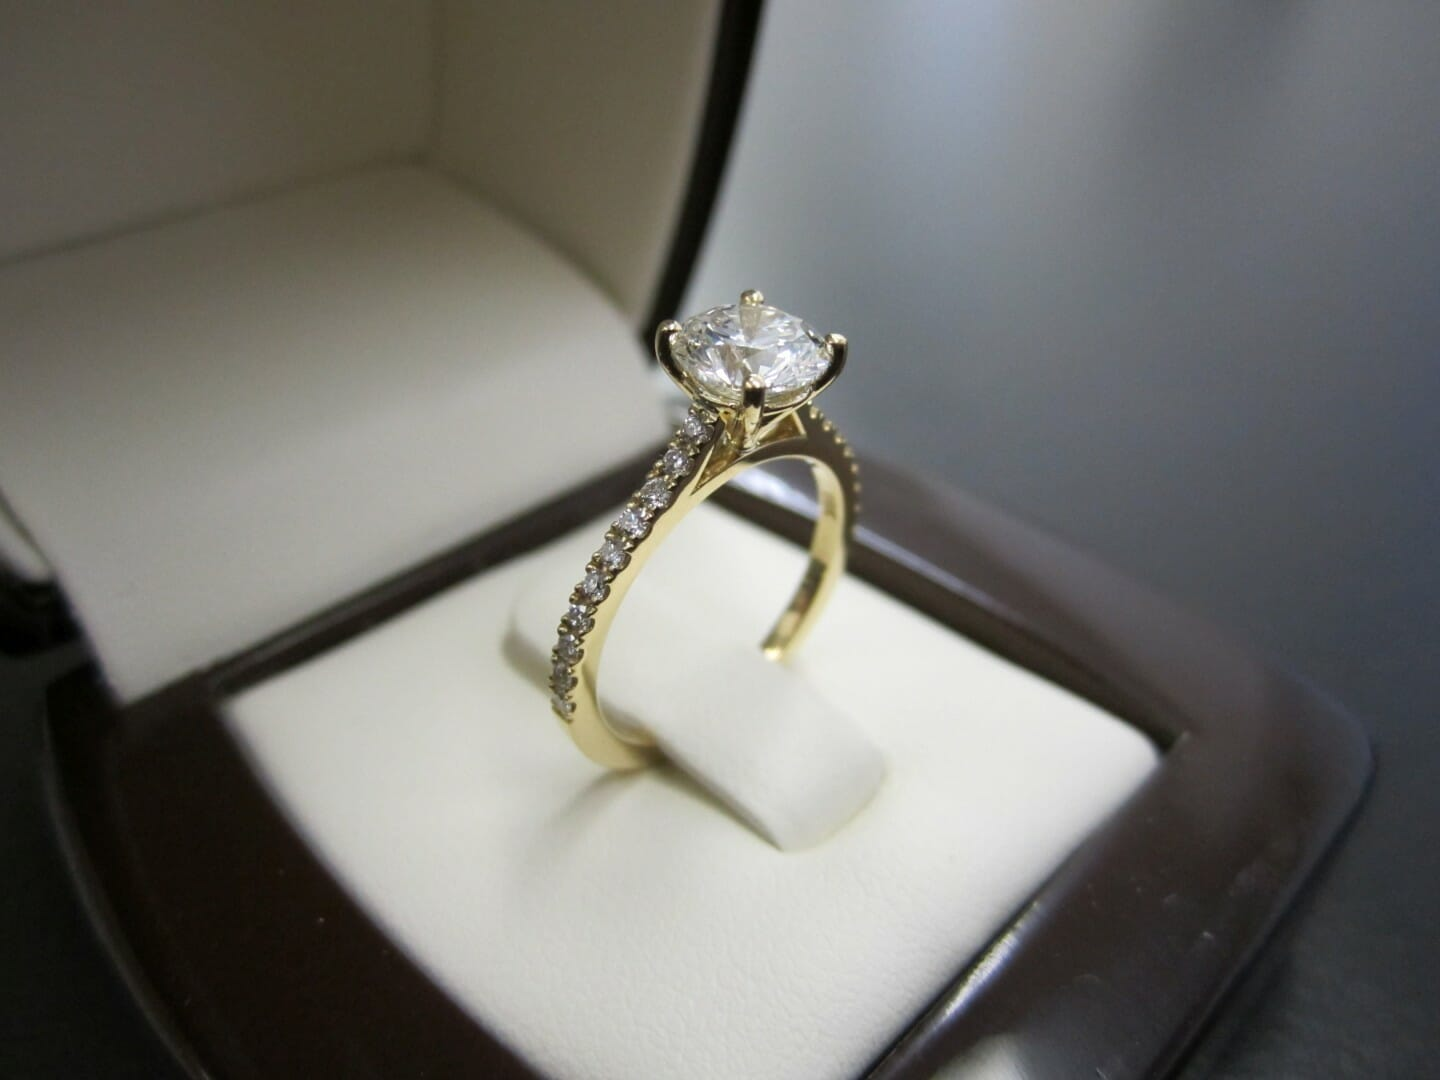 Picture of 1.01ct Round Brilliant Diamond in 18K Yellow Gold Micro Pave Engagement Ring